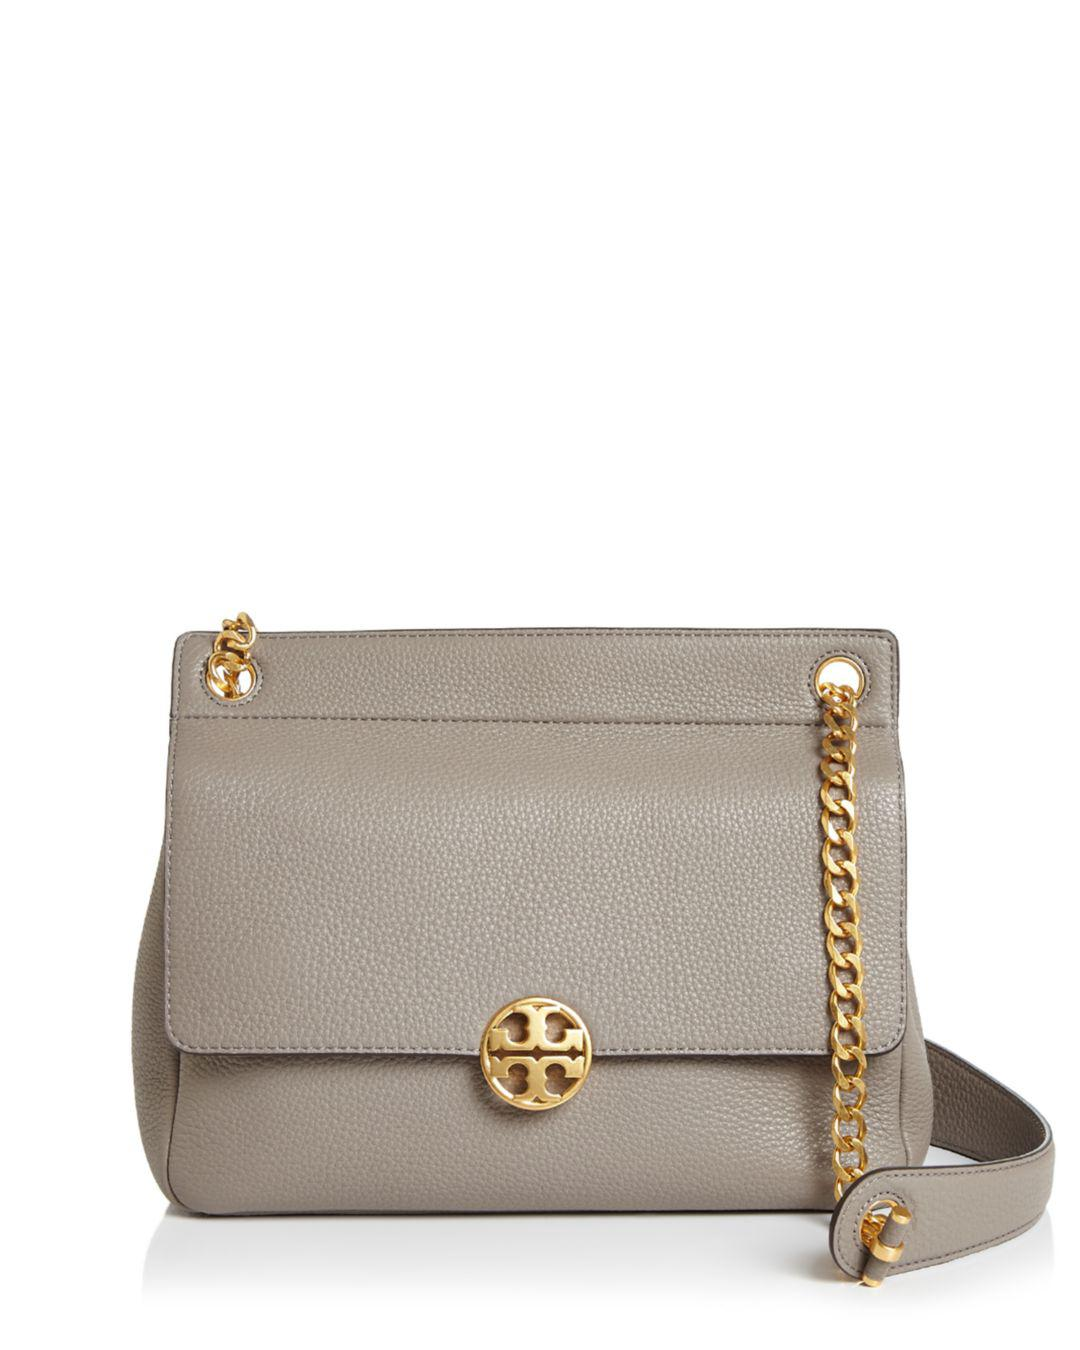 d6e638762481 Tory Burch Chelsea Flap Convertible Leather Shoulder Bag - Save ...